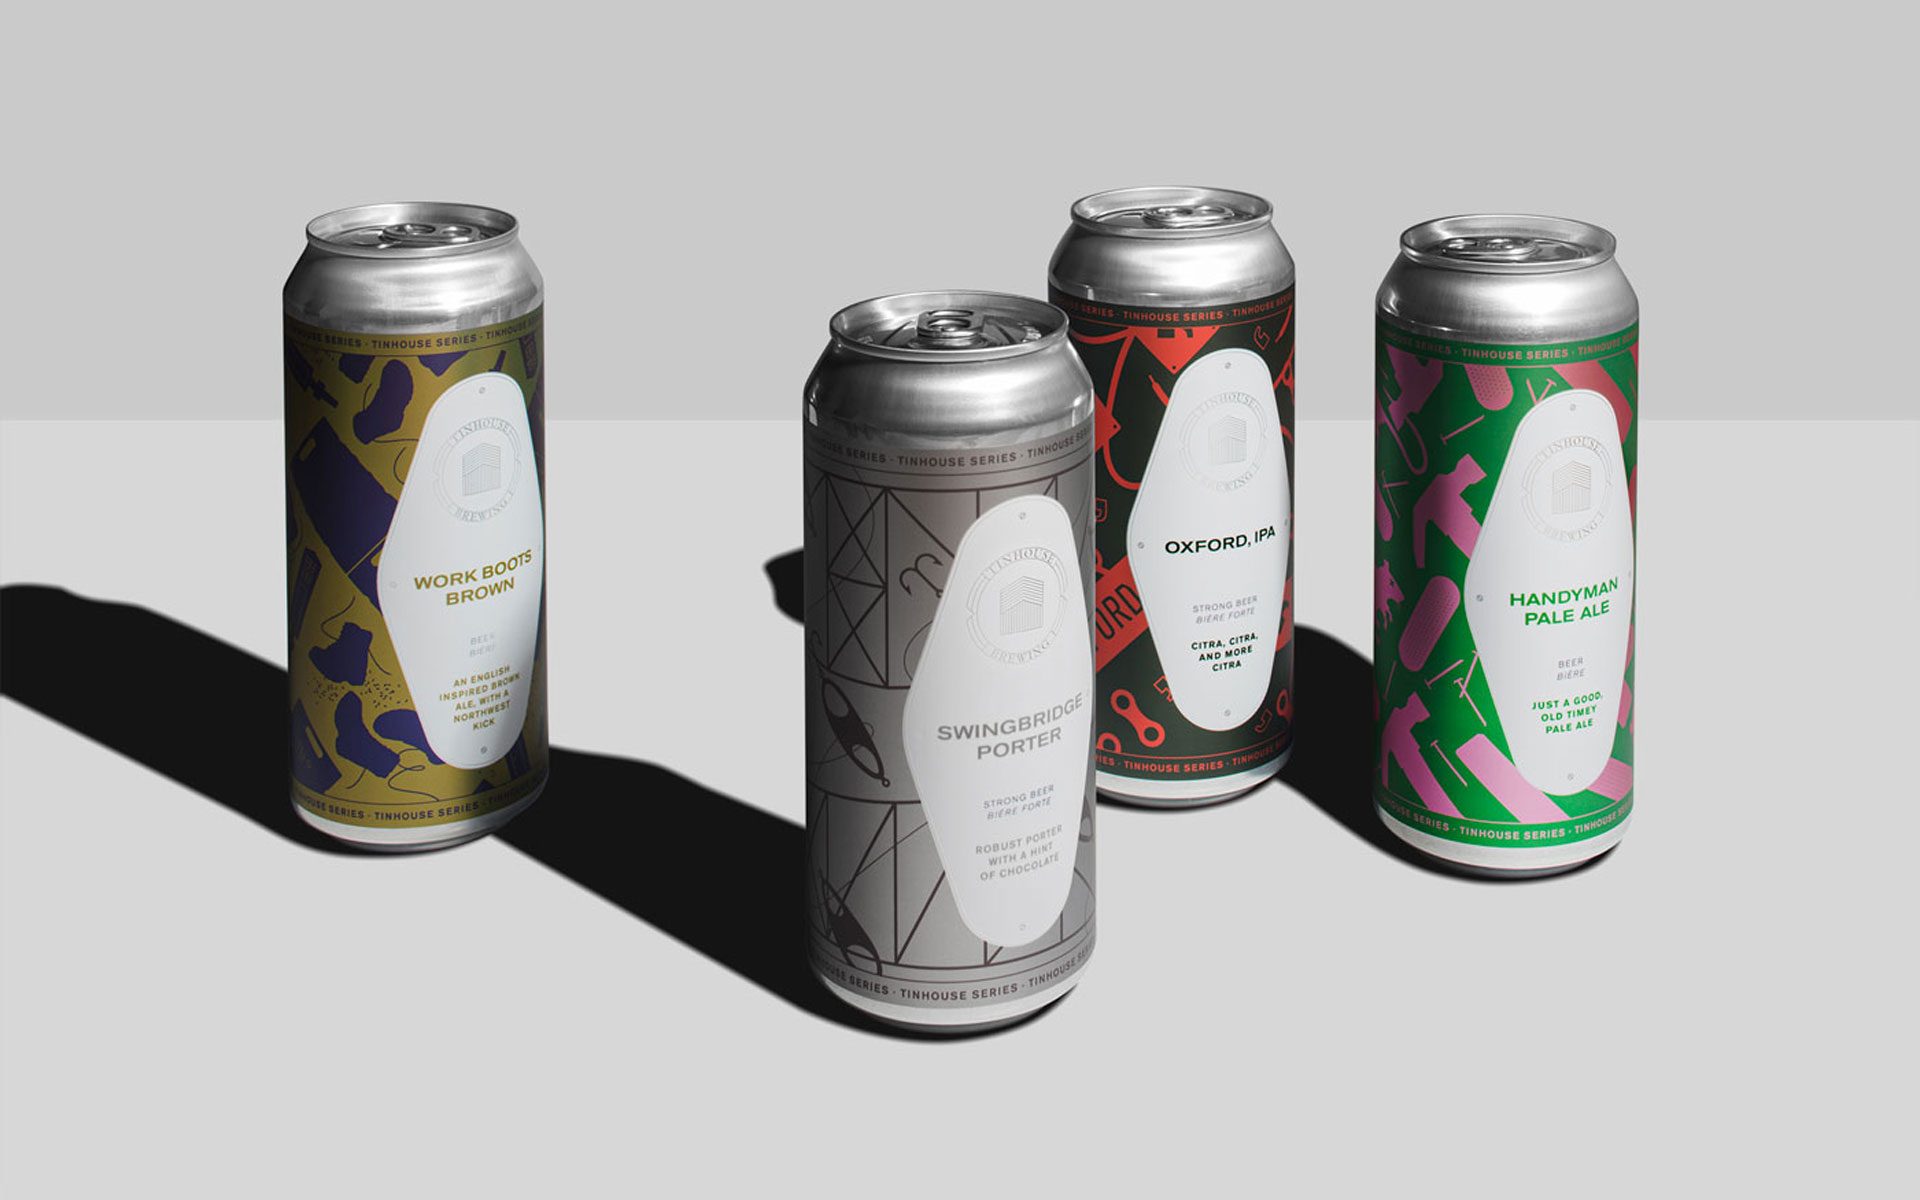 photo of Tinhouse Brewing beer cans